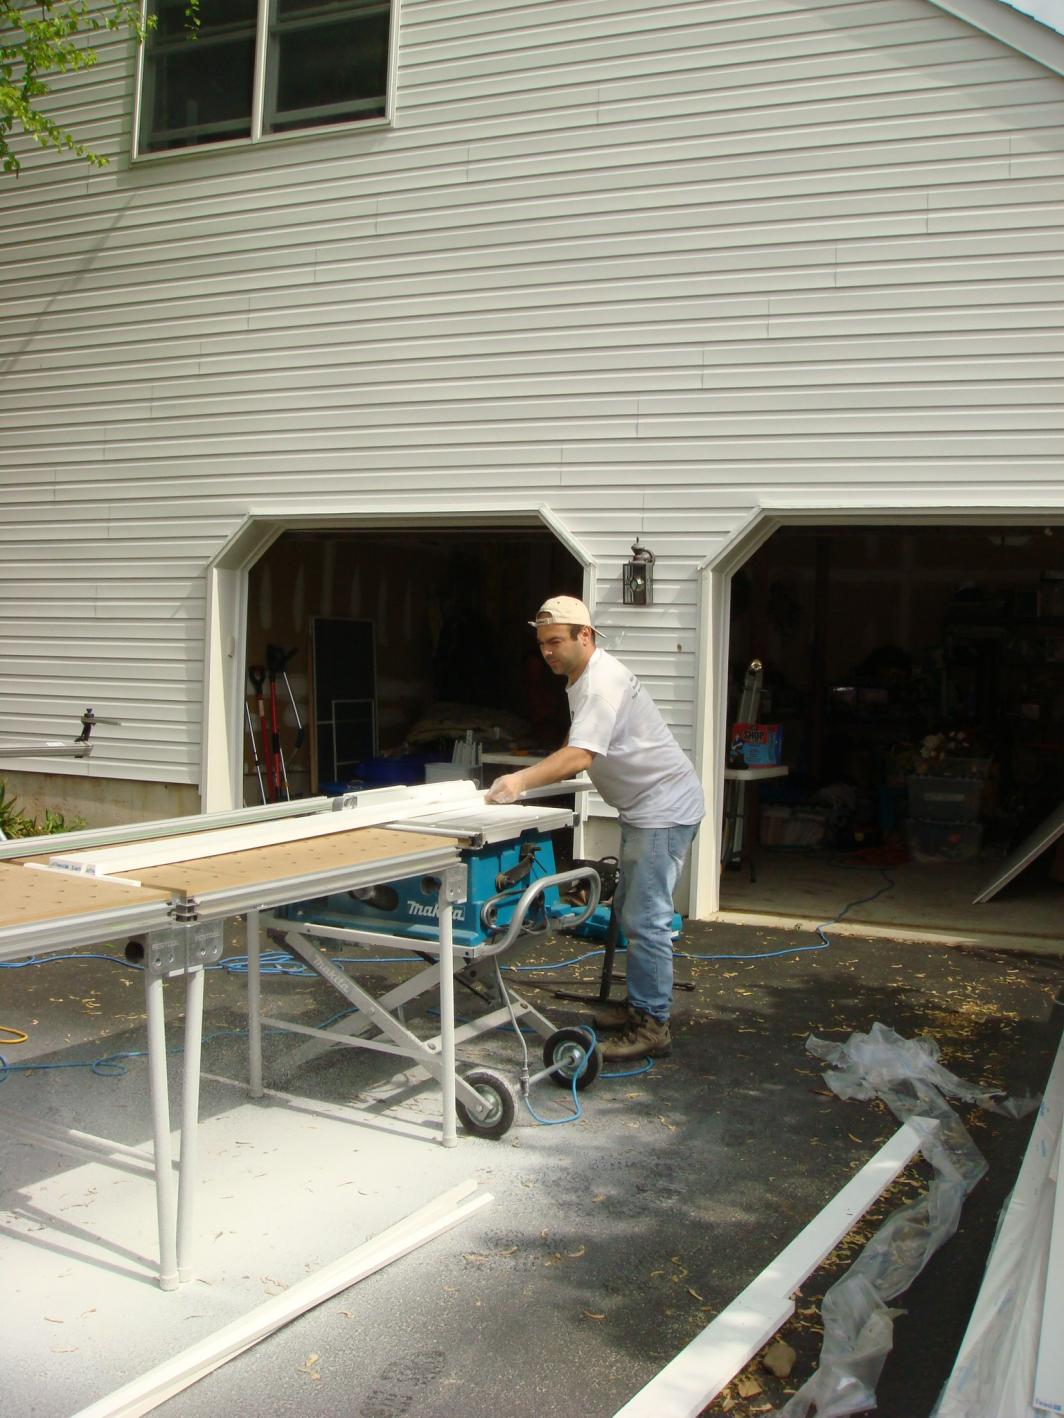 portable table saw for cabinet making-dsc01048.jpg